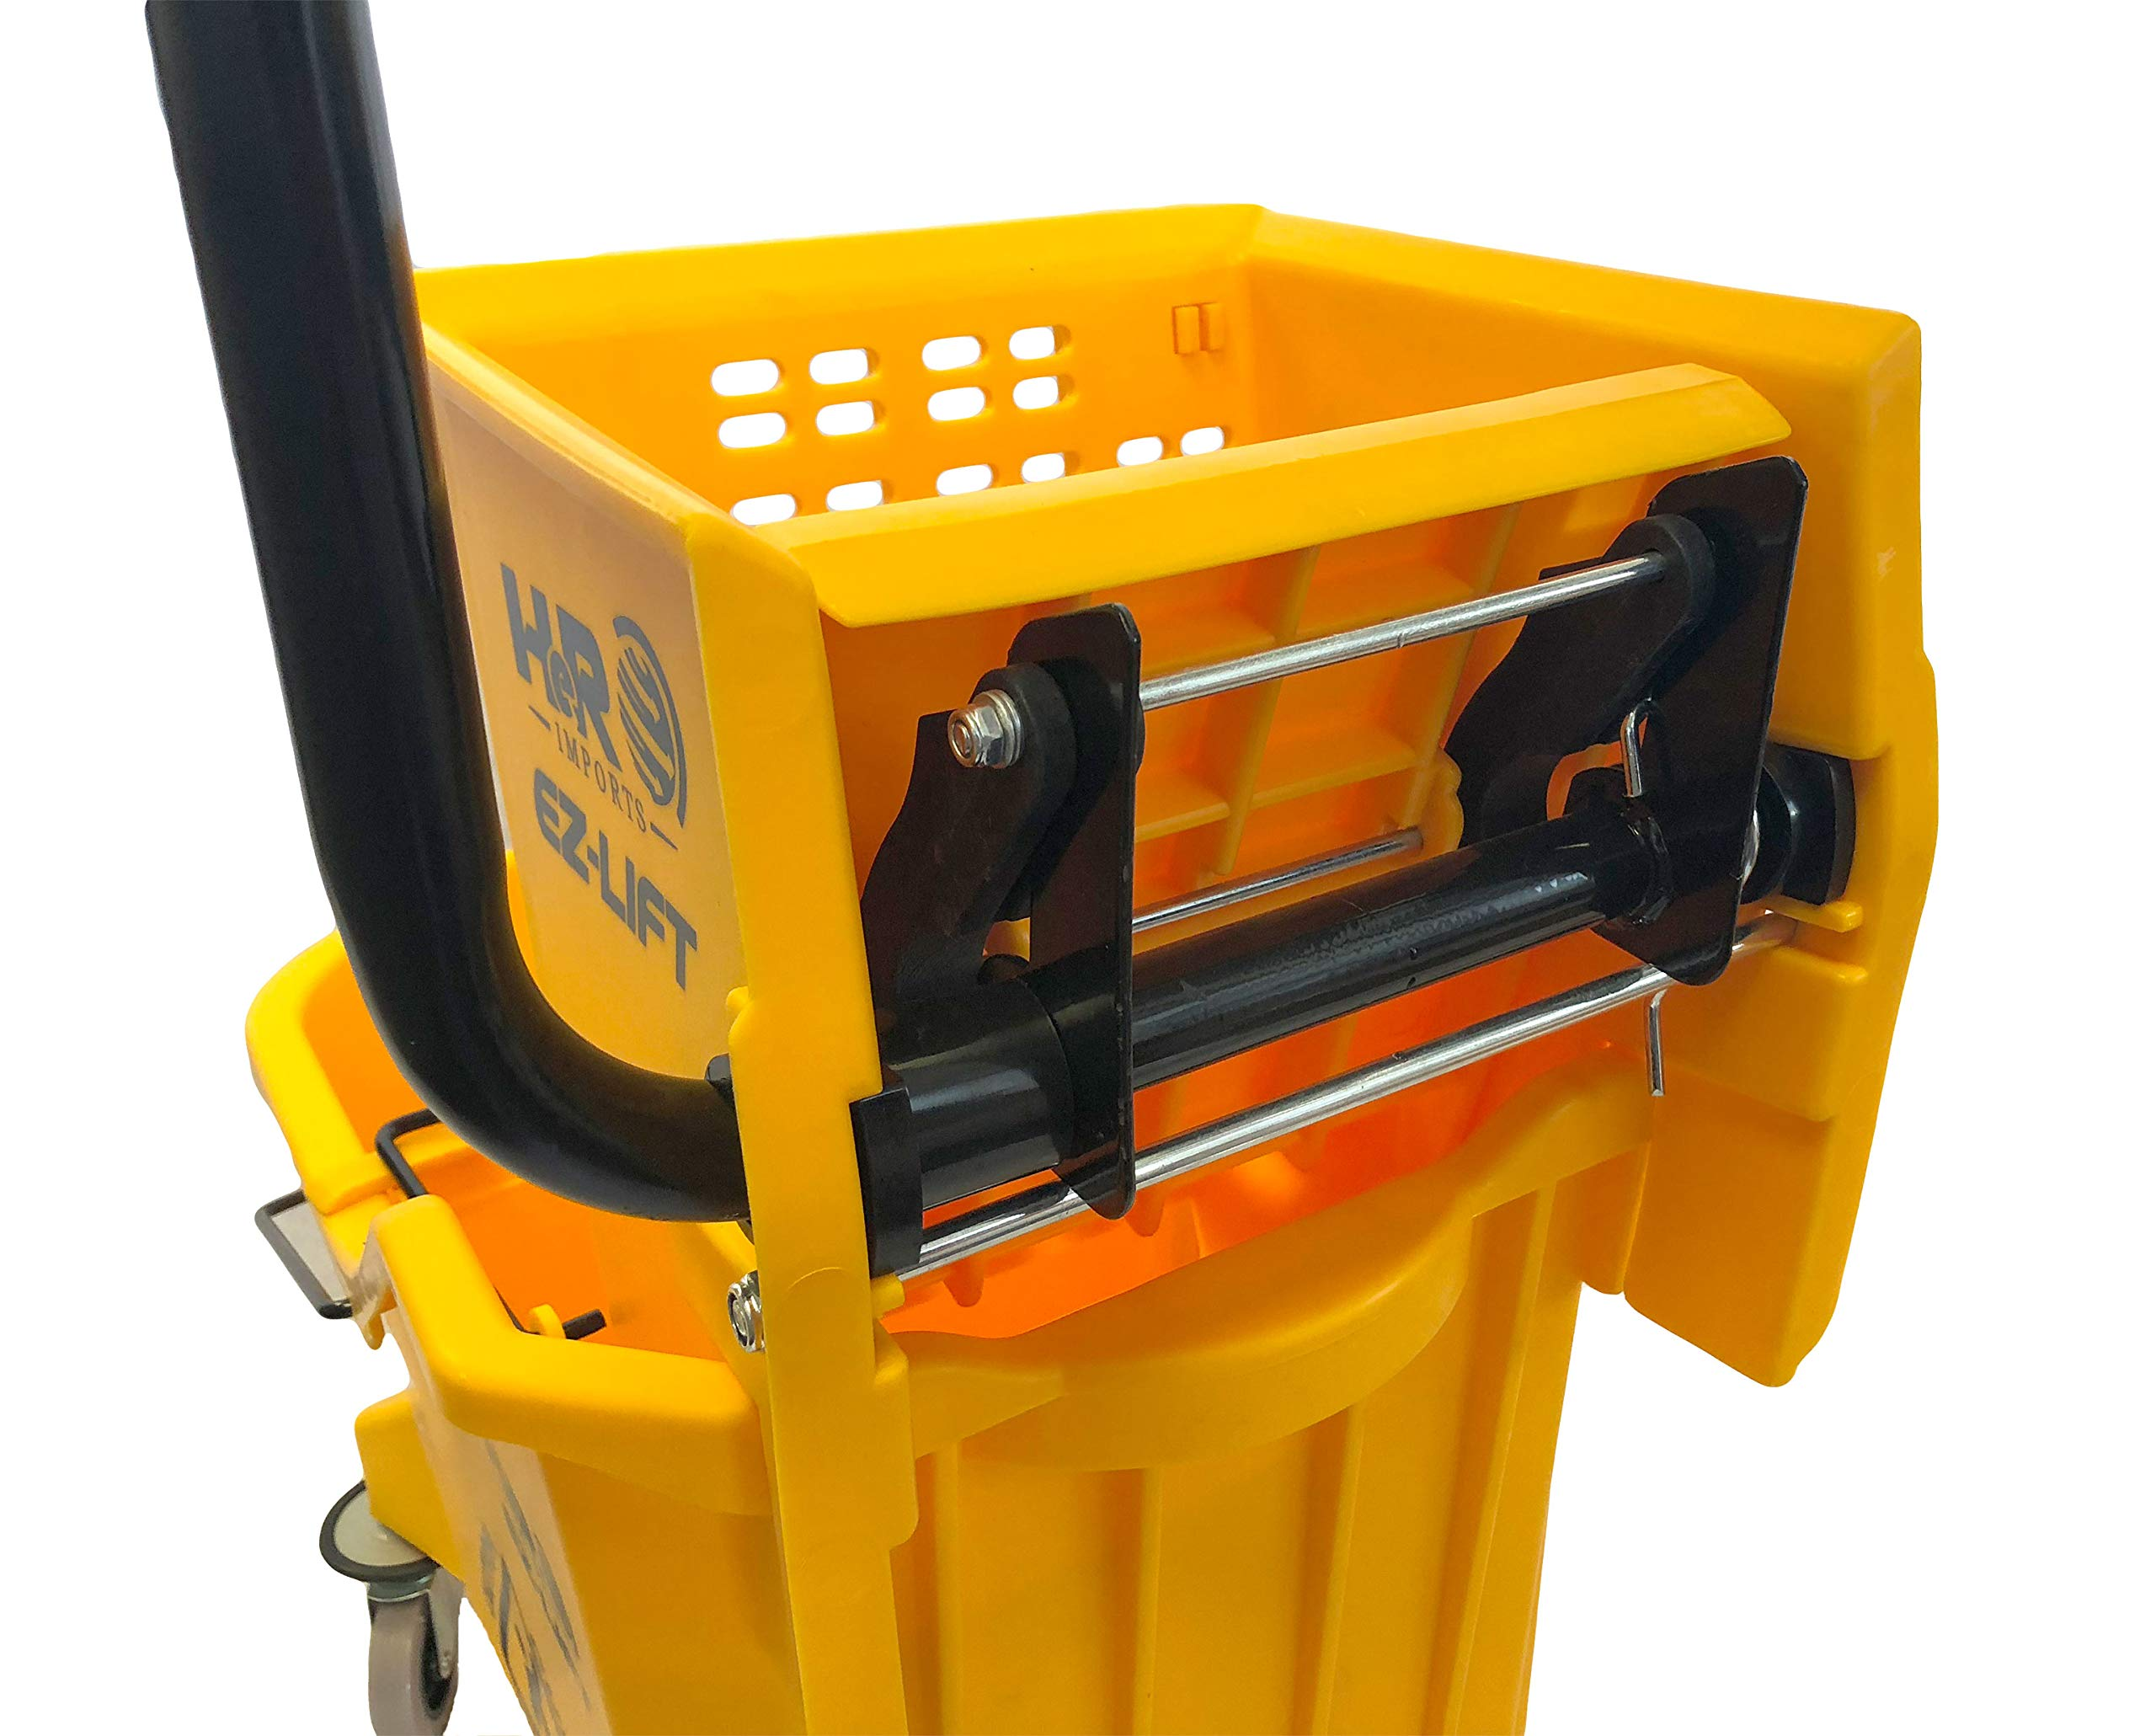 Hero EZ-LIFT Dual Cavity Commercial Mop Bucket with Wringer on Wheels, includes Dirty Water Bucket (36-Quart   9 Gallon Cleaning Bucket) by HERO IMPORTS (Image #5)